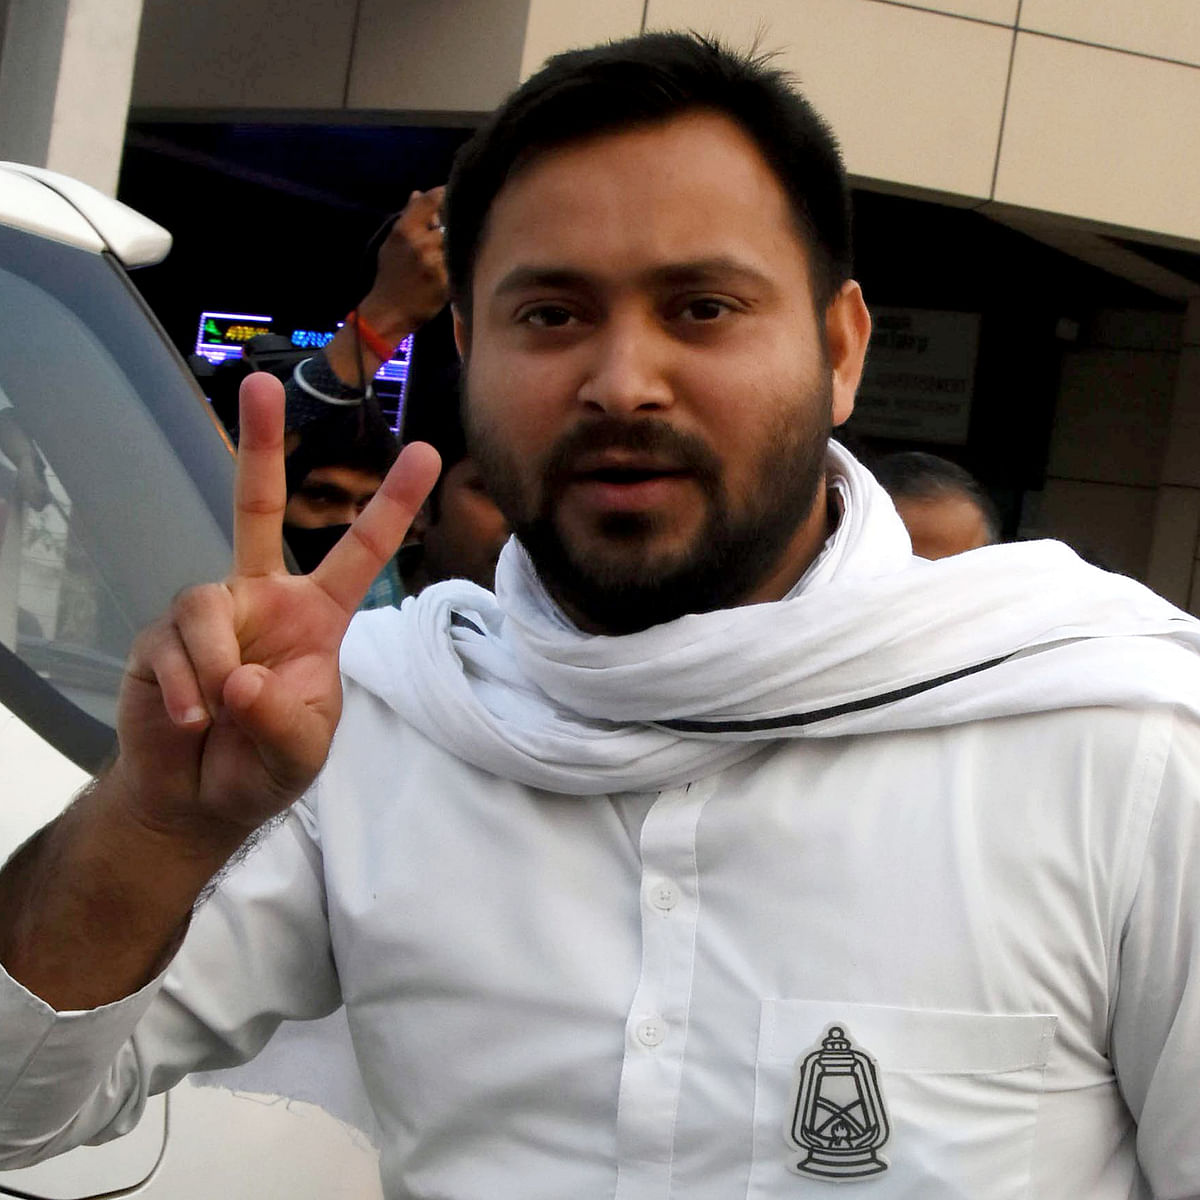 Bihar Elections 2020: RJD's Tejashwi Yadav leads by over 8,000 votes in Raghopur Assembly constituency